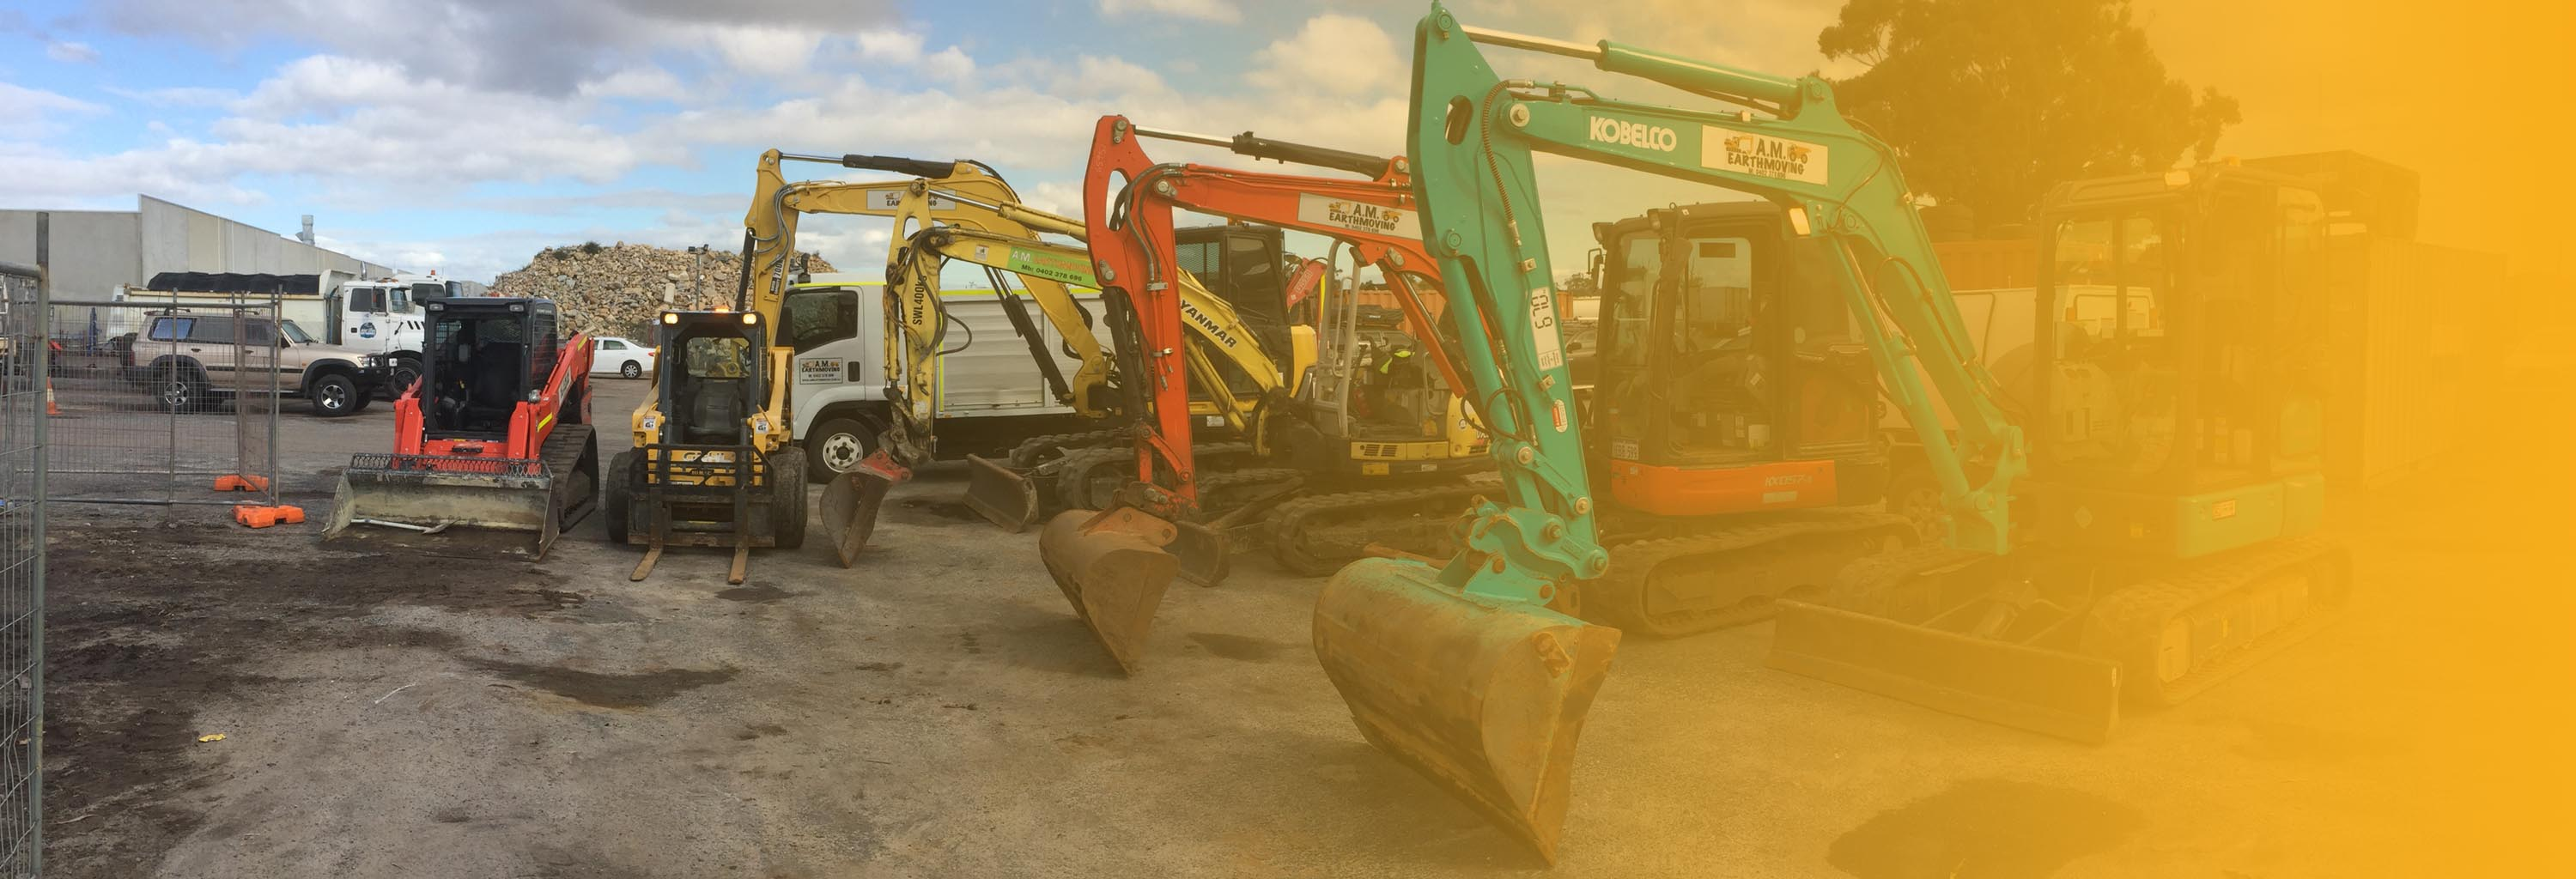 am earthmoving excavators header